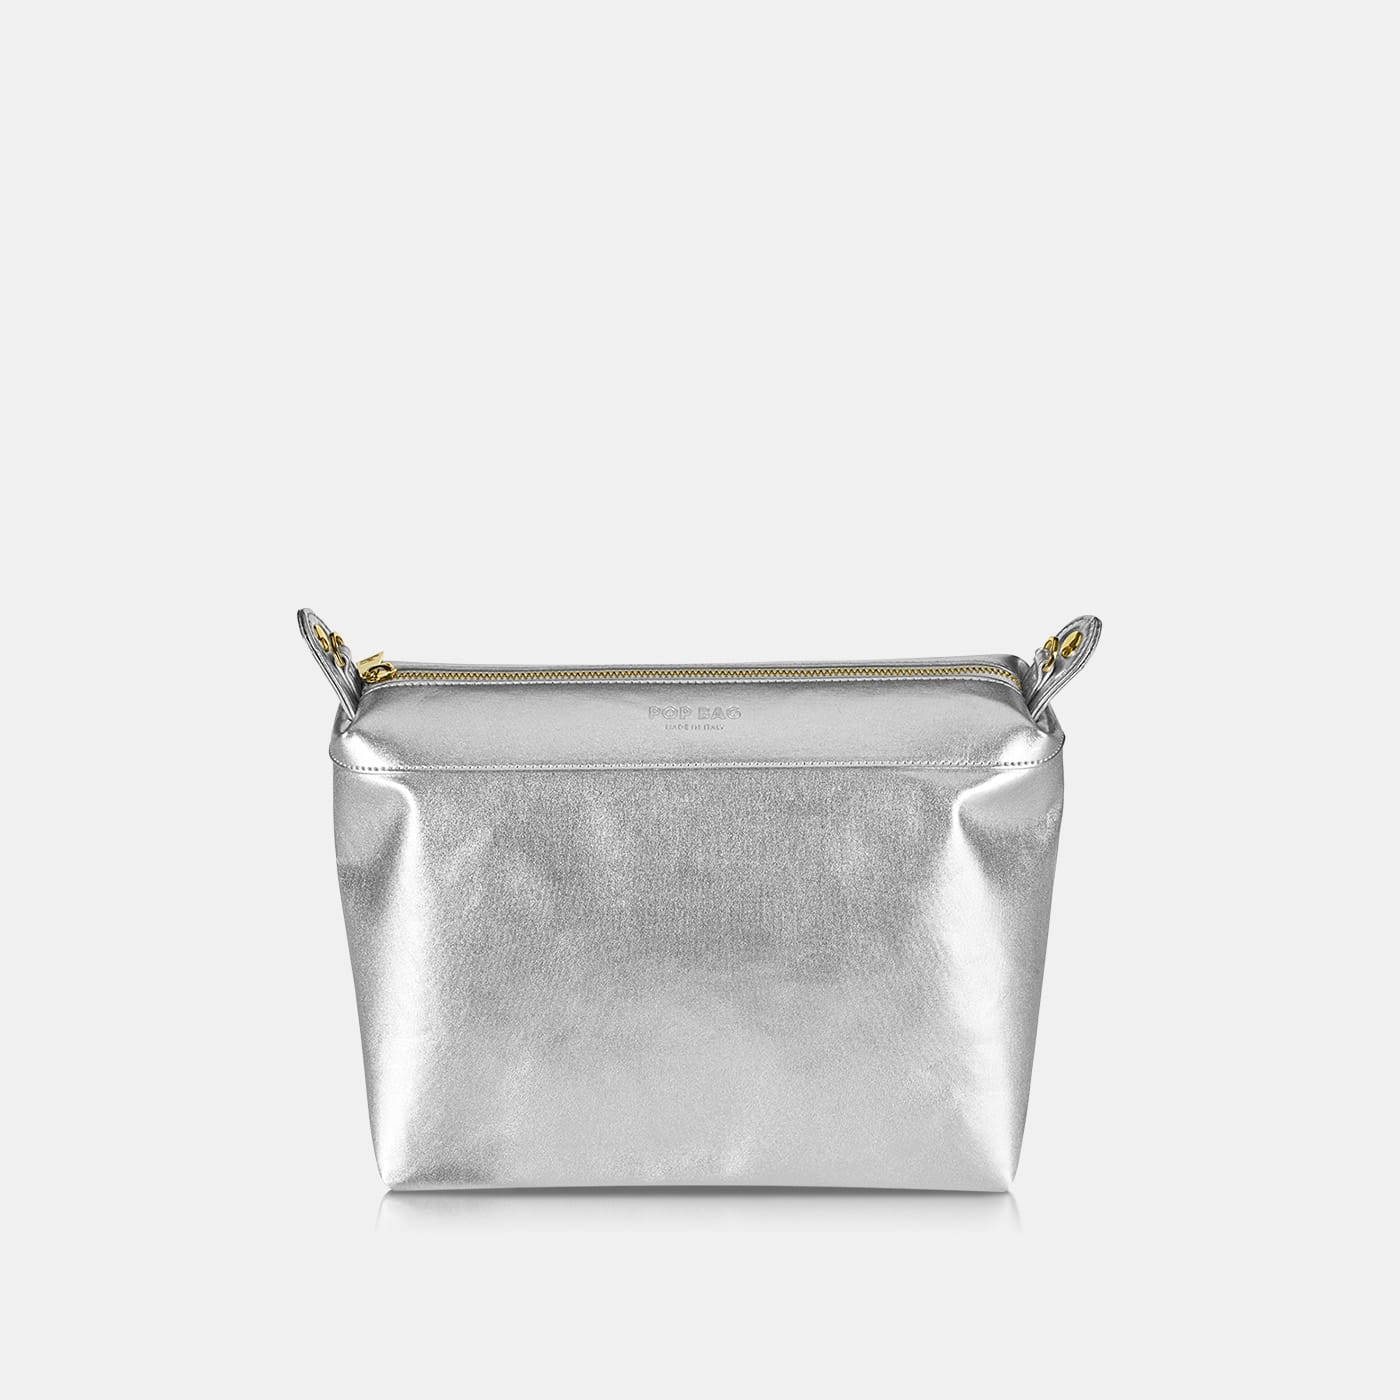 Bag In Bag - Metallic - Silver Metal - Small